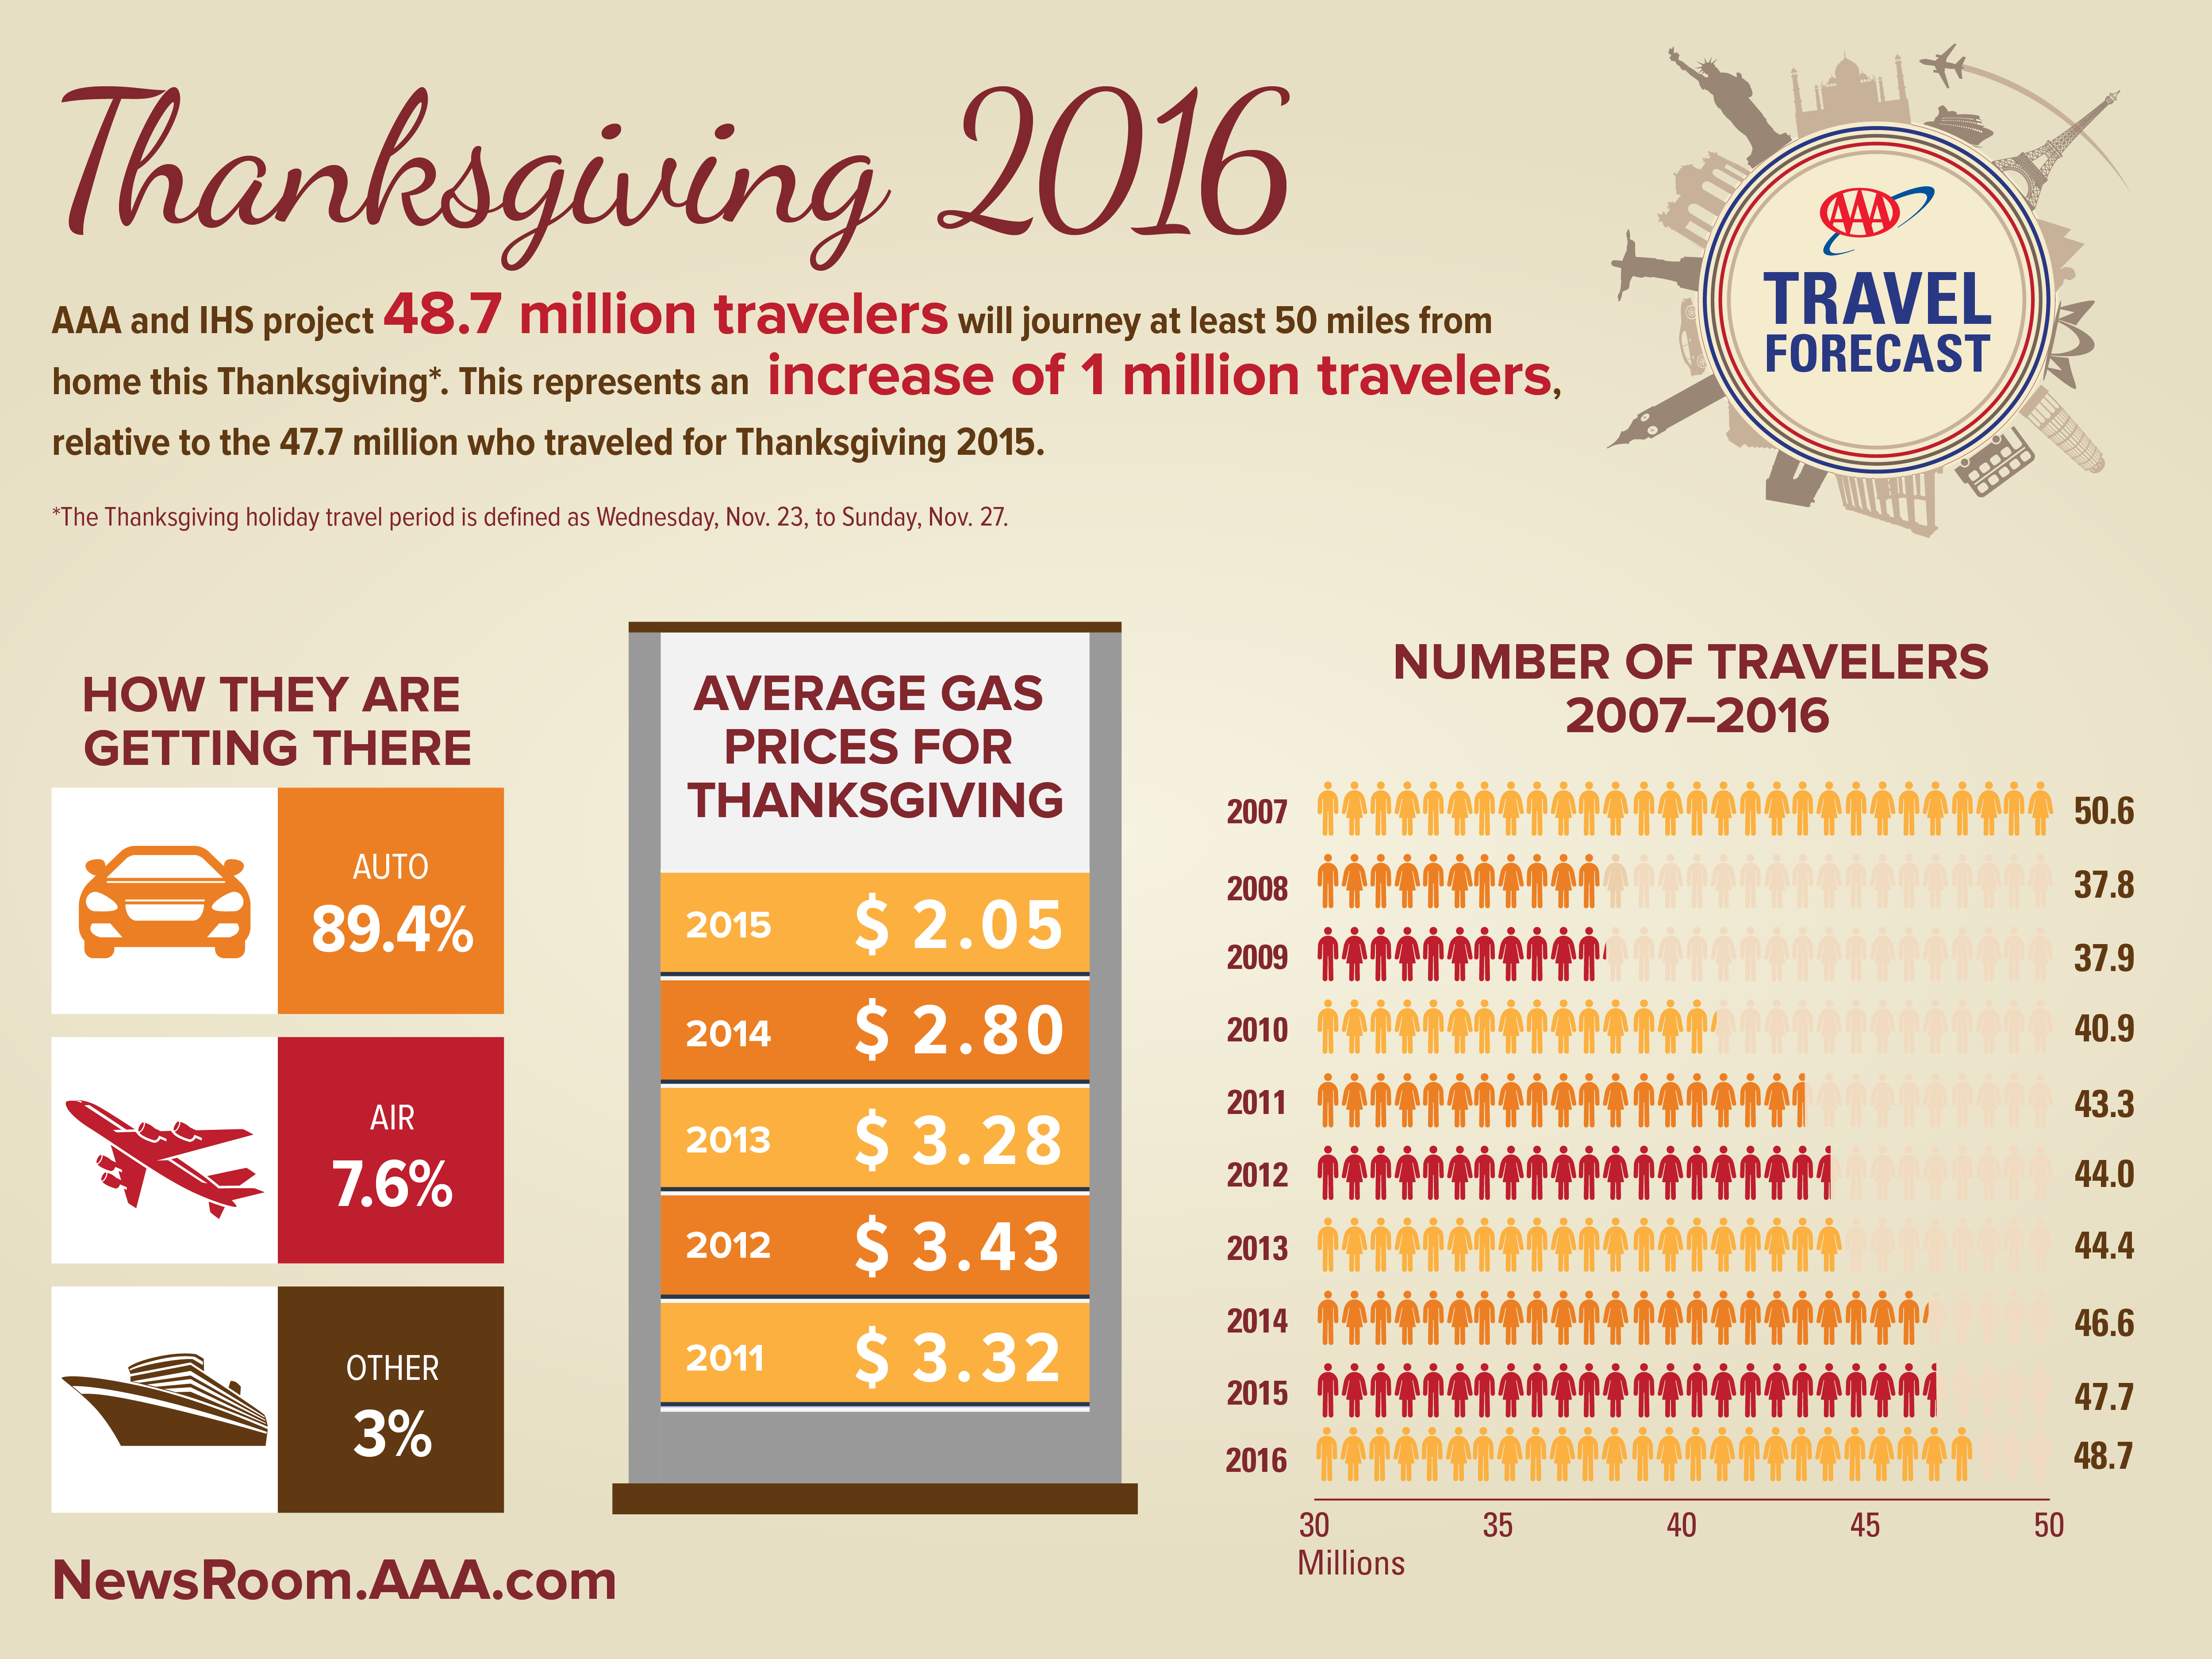 Source: http://newsroom.aaa.com/2016/11/aaa-48-7-million-americans-travel-thanksgiving/?sf50869418=1